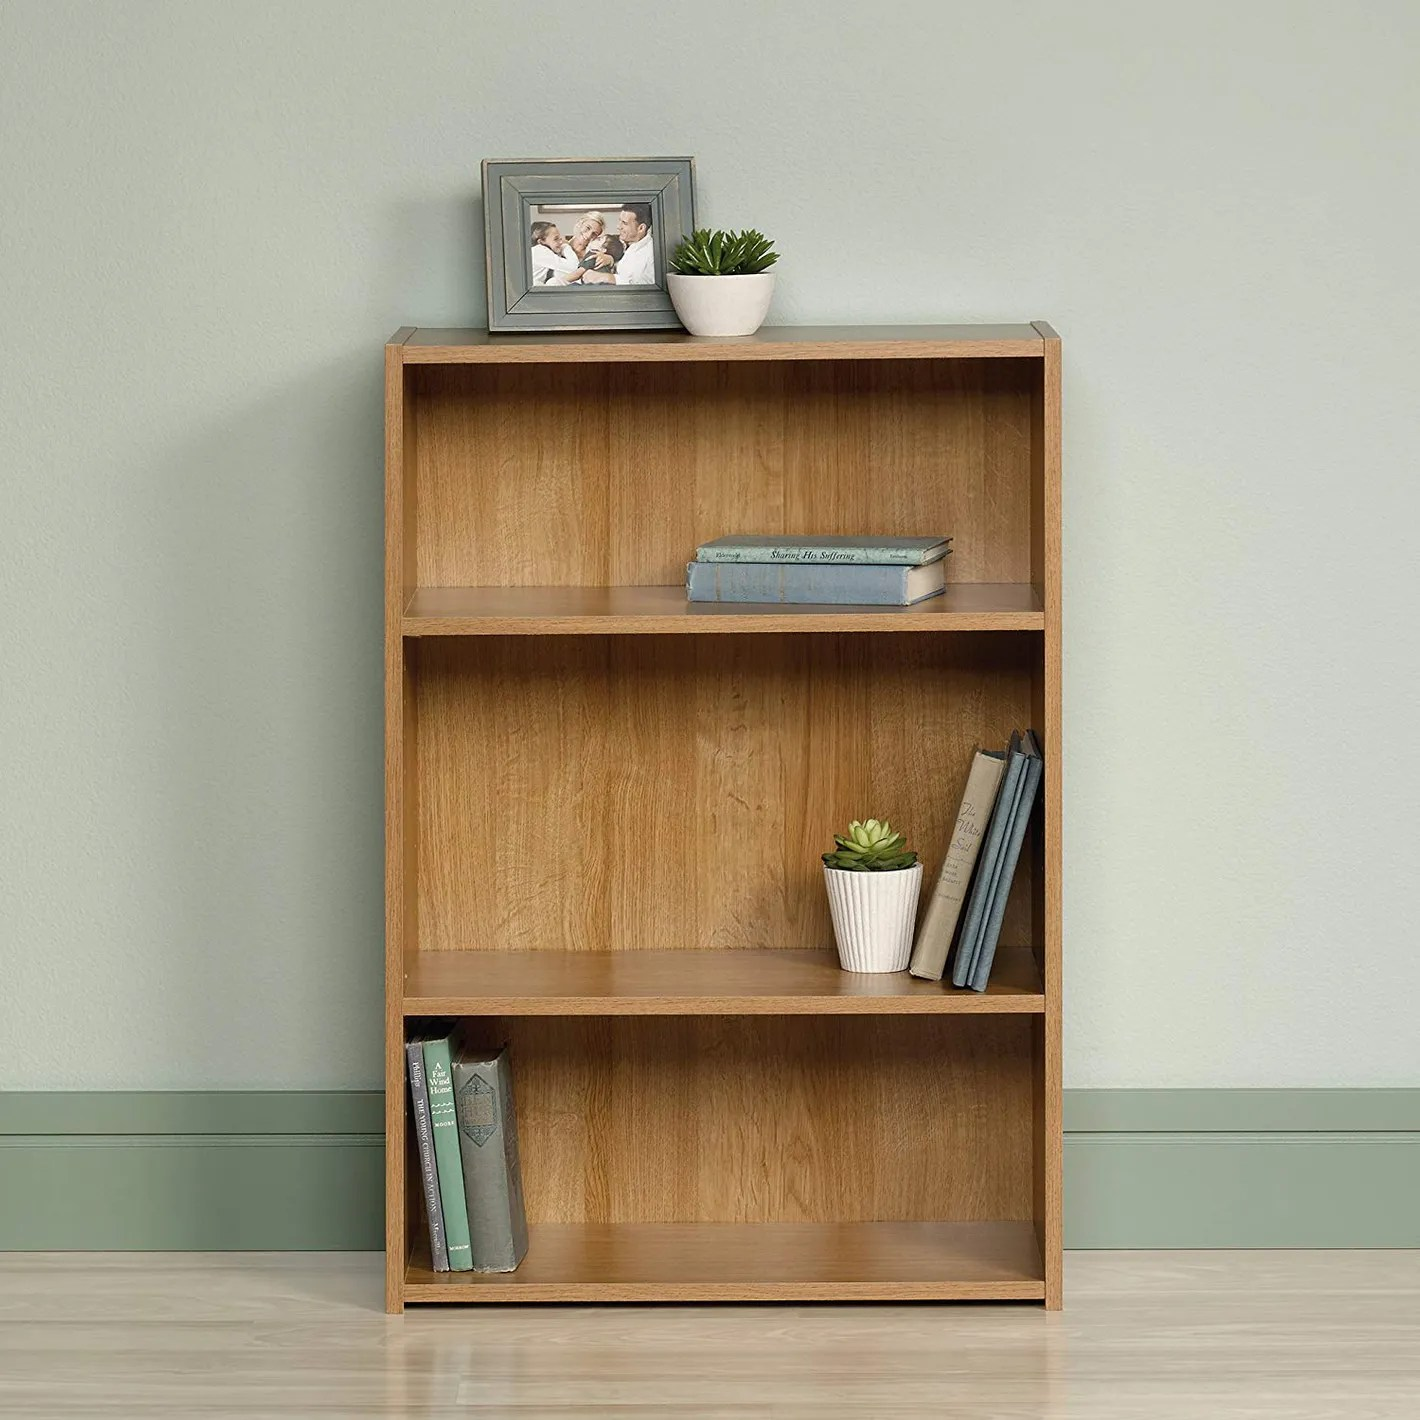 Regal Billig Kaufen 12 Best Cheap Bookcases Under $50 2018